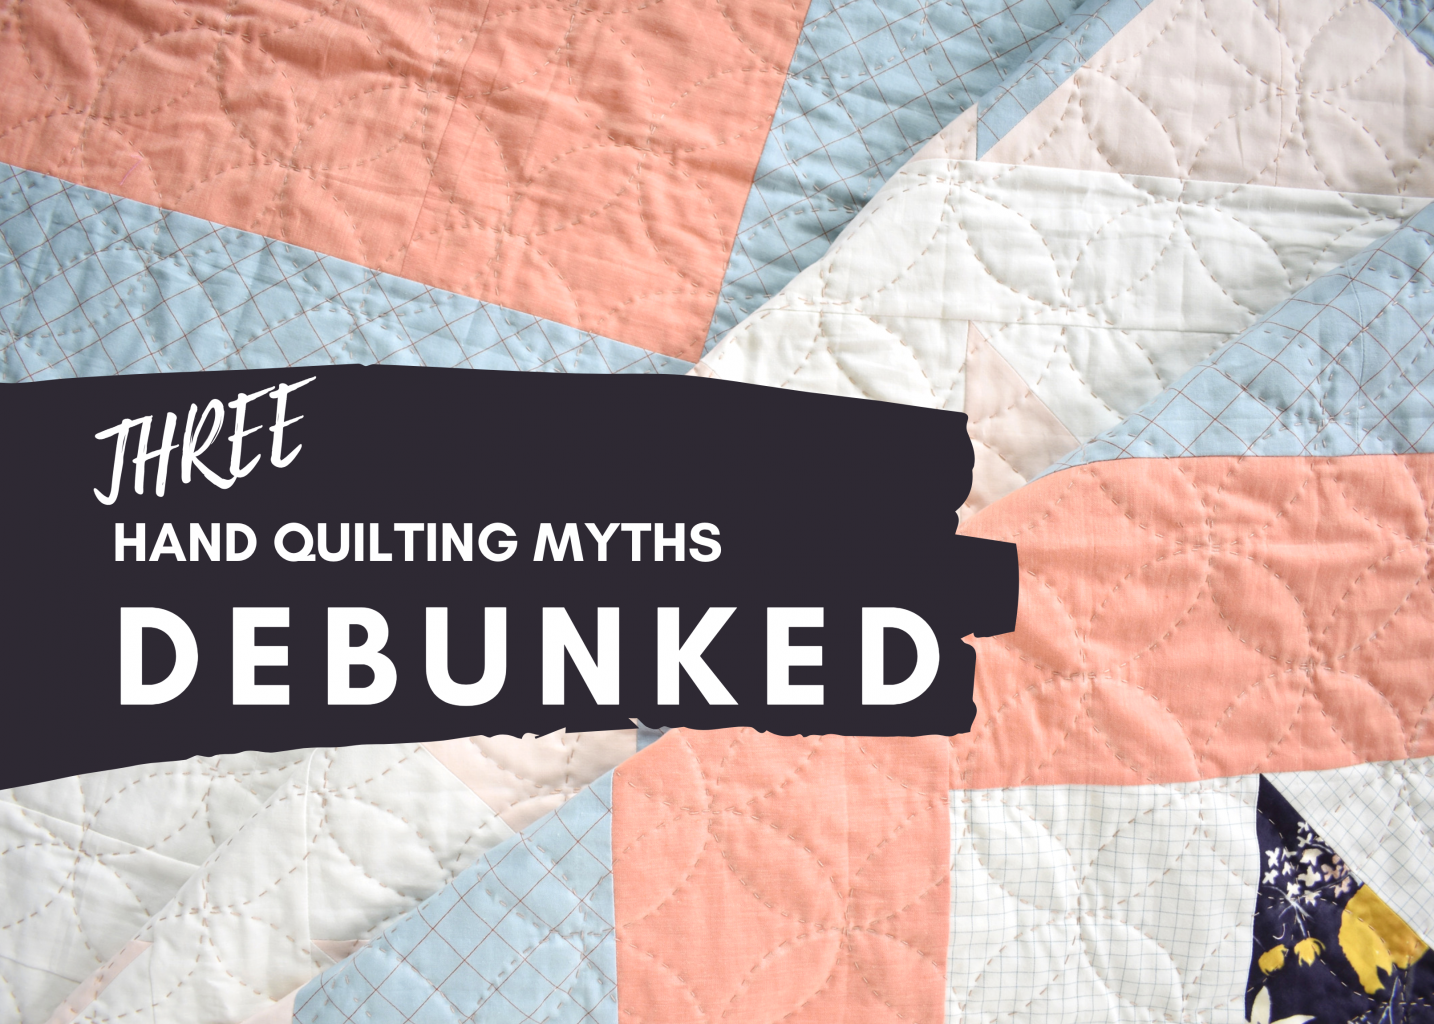 three hand quilting myths debunked